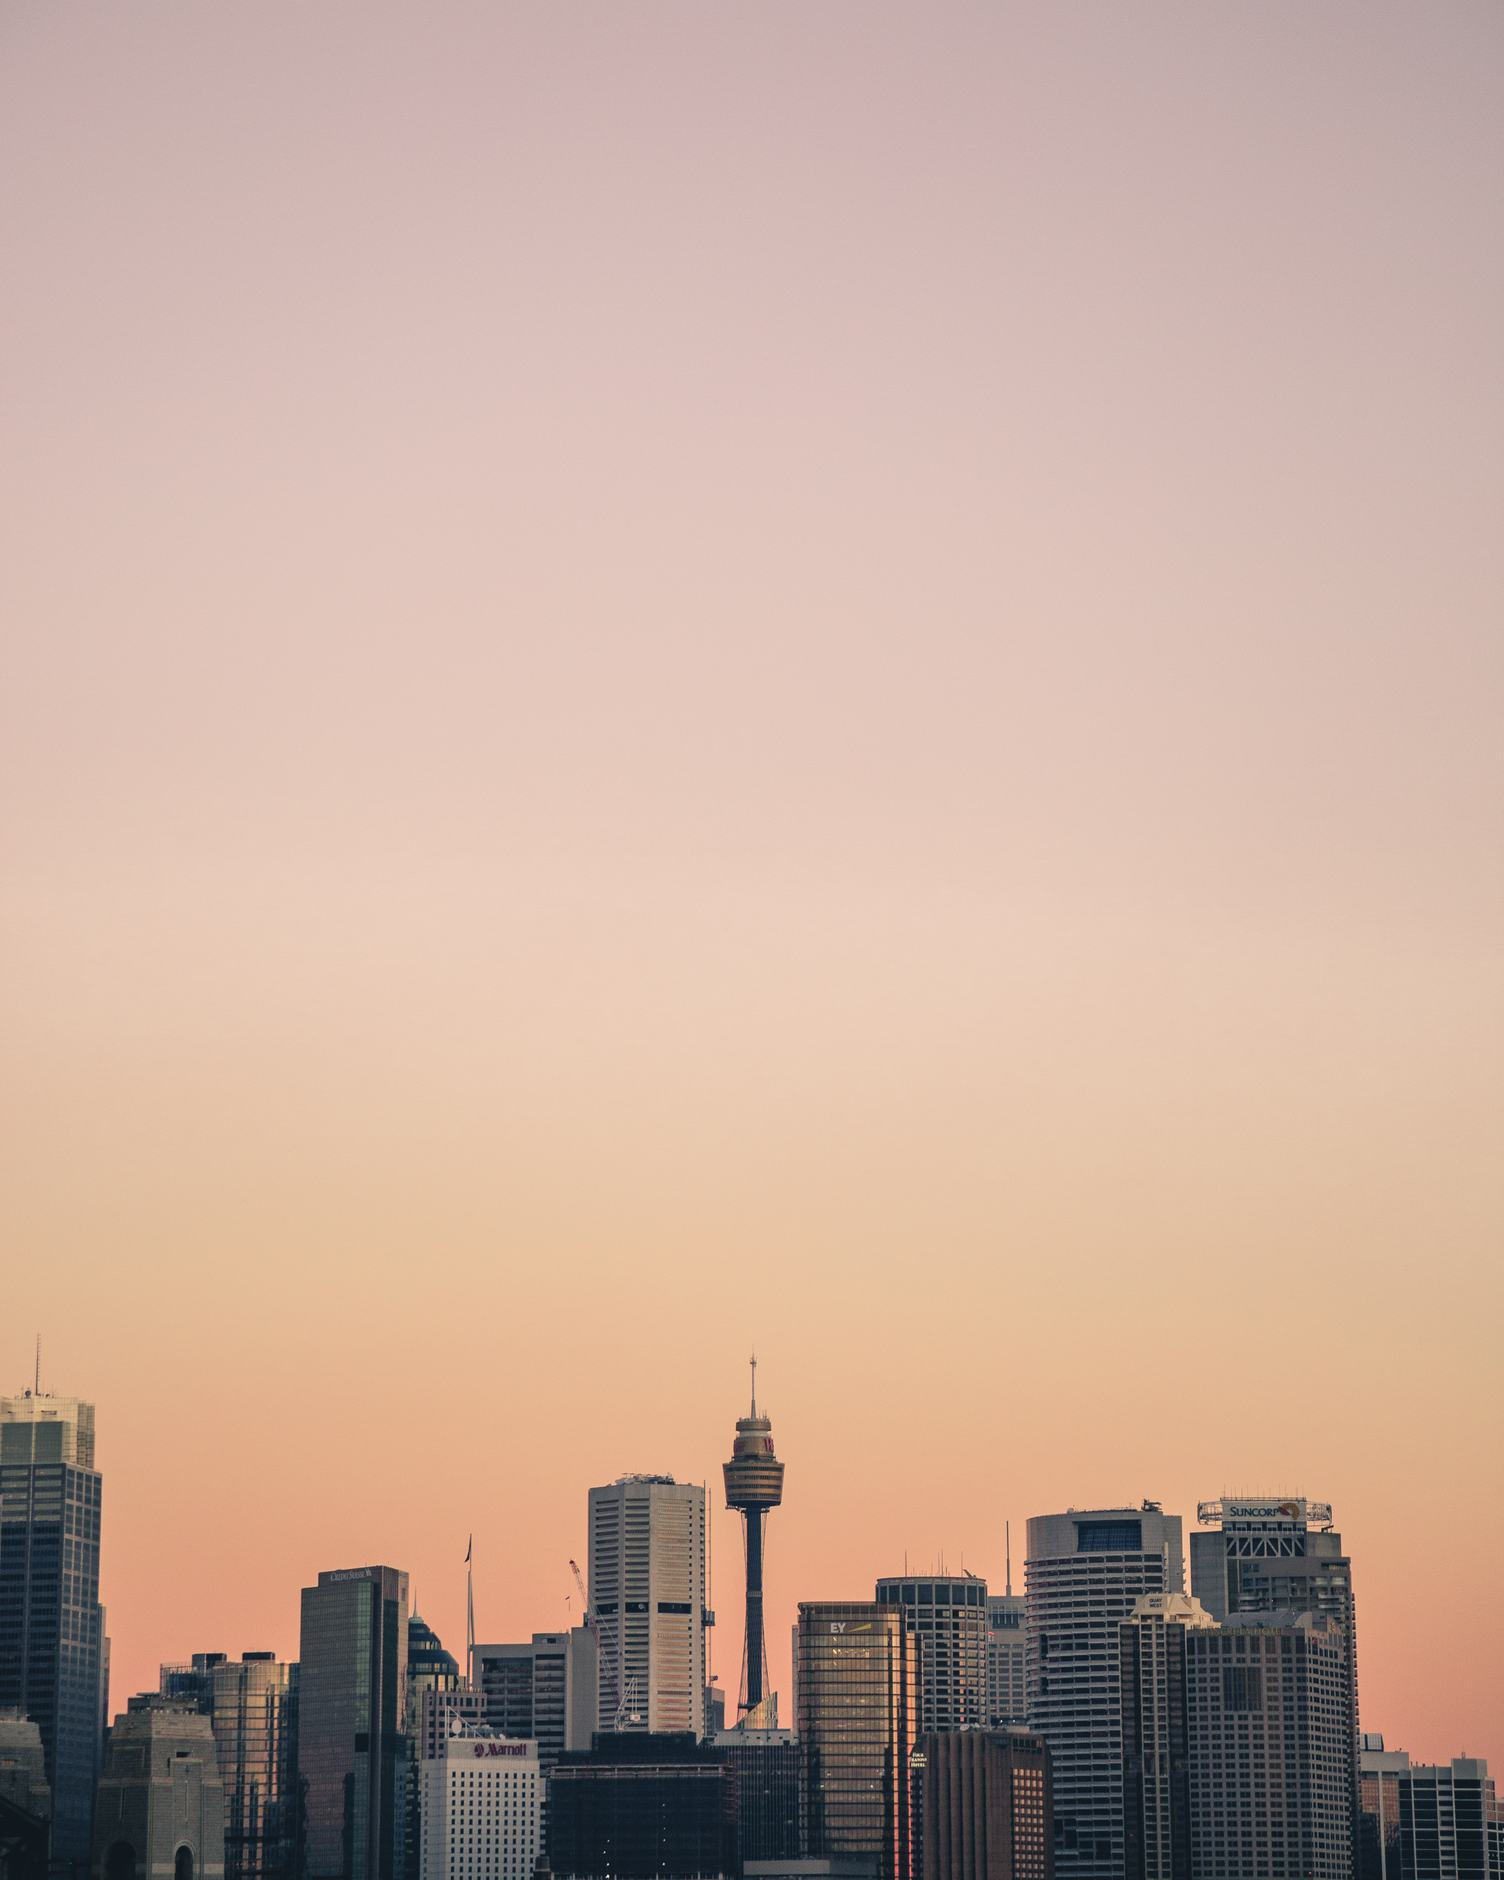 Sydney Business District Skyline with Eye Tower in Orange Tint